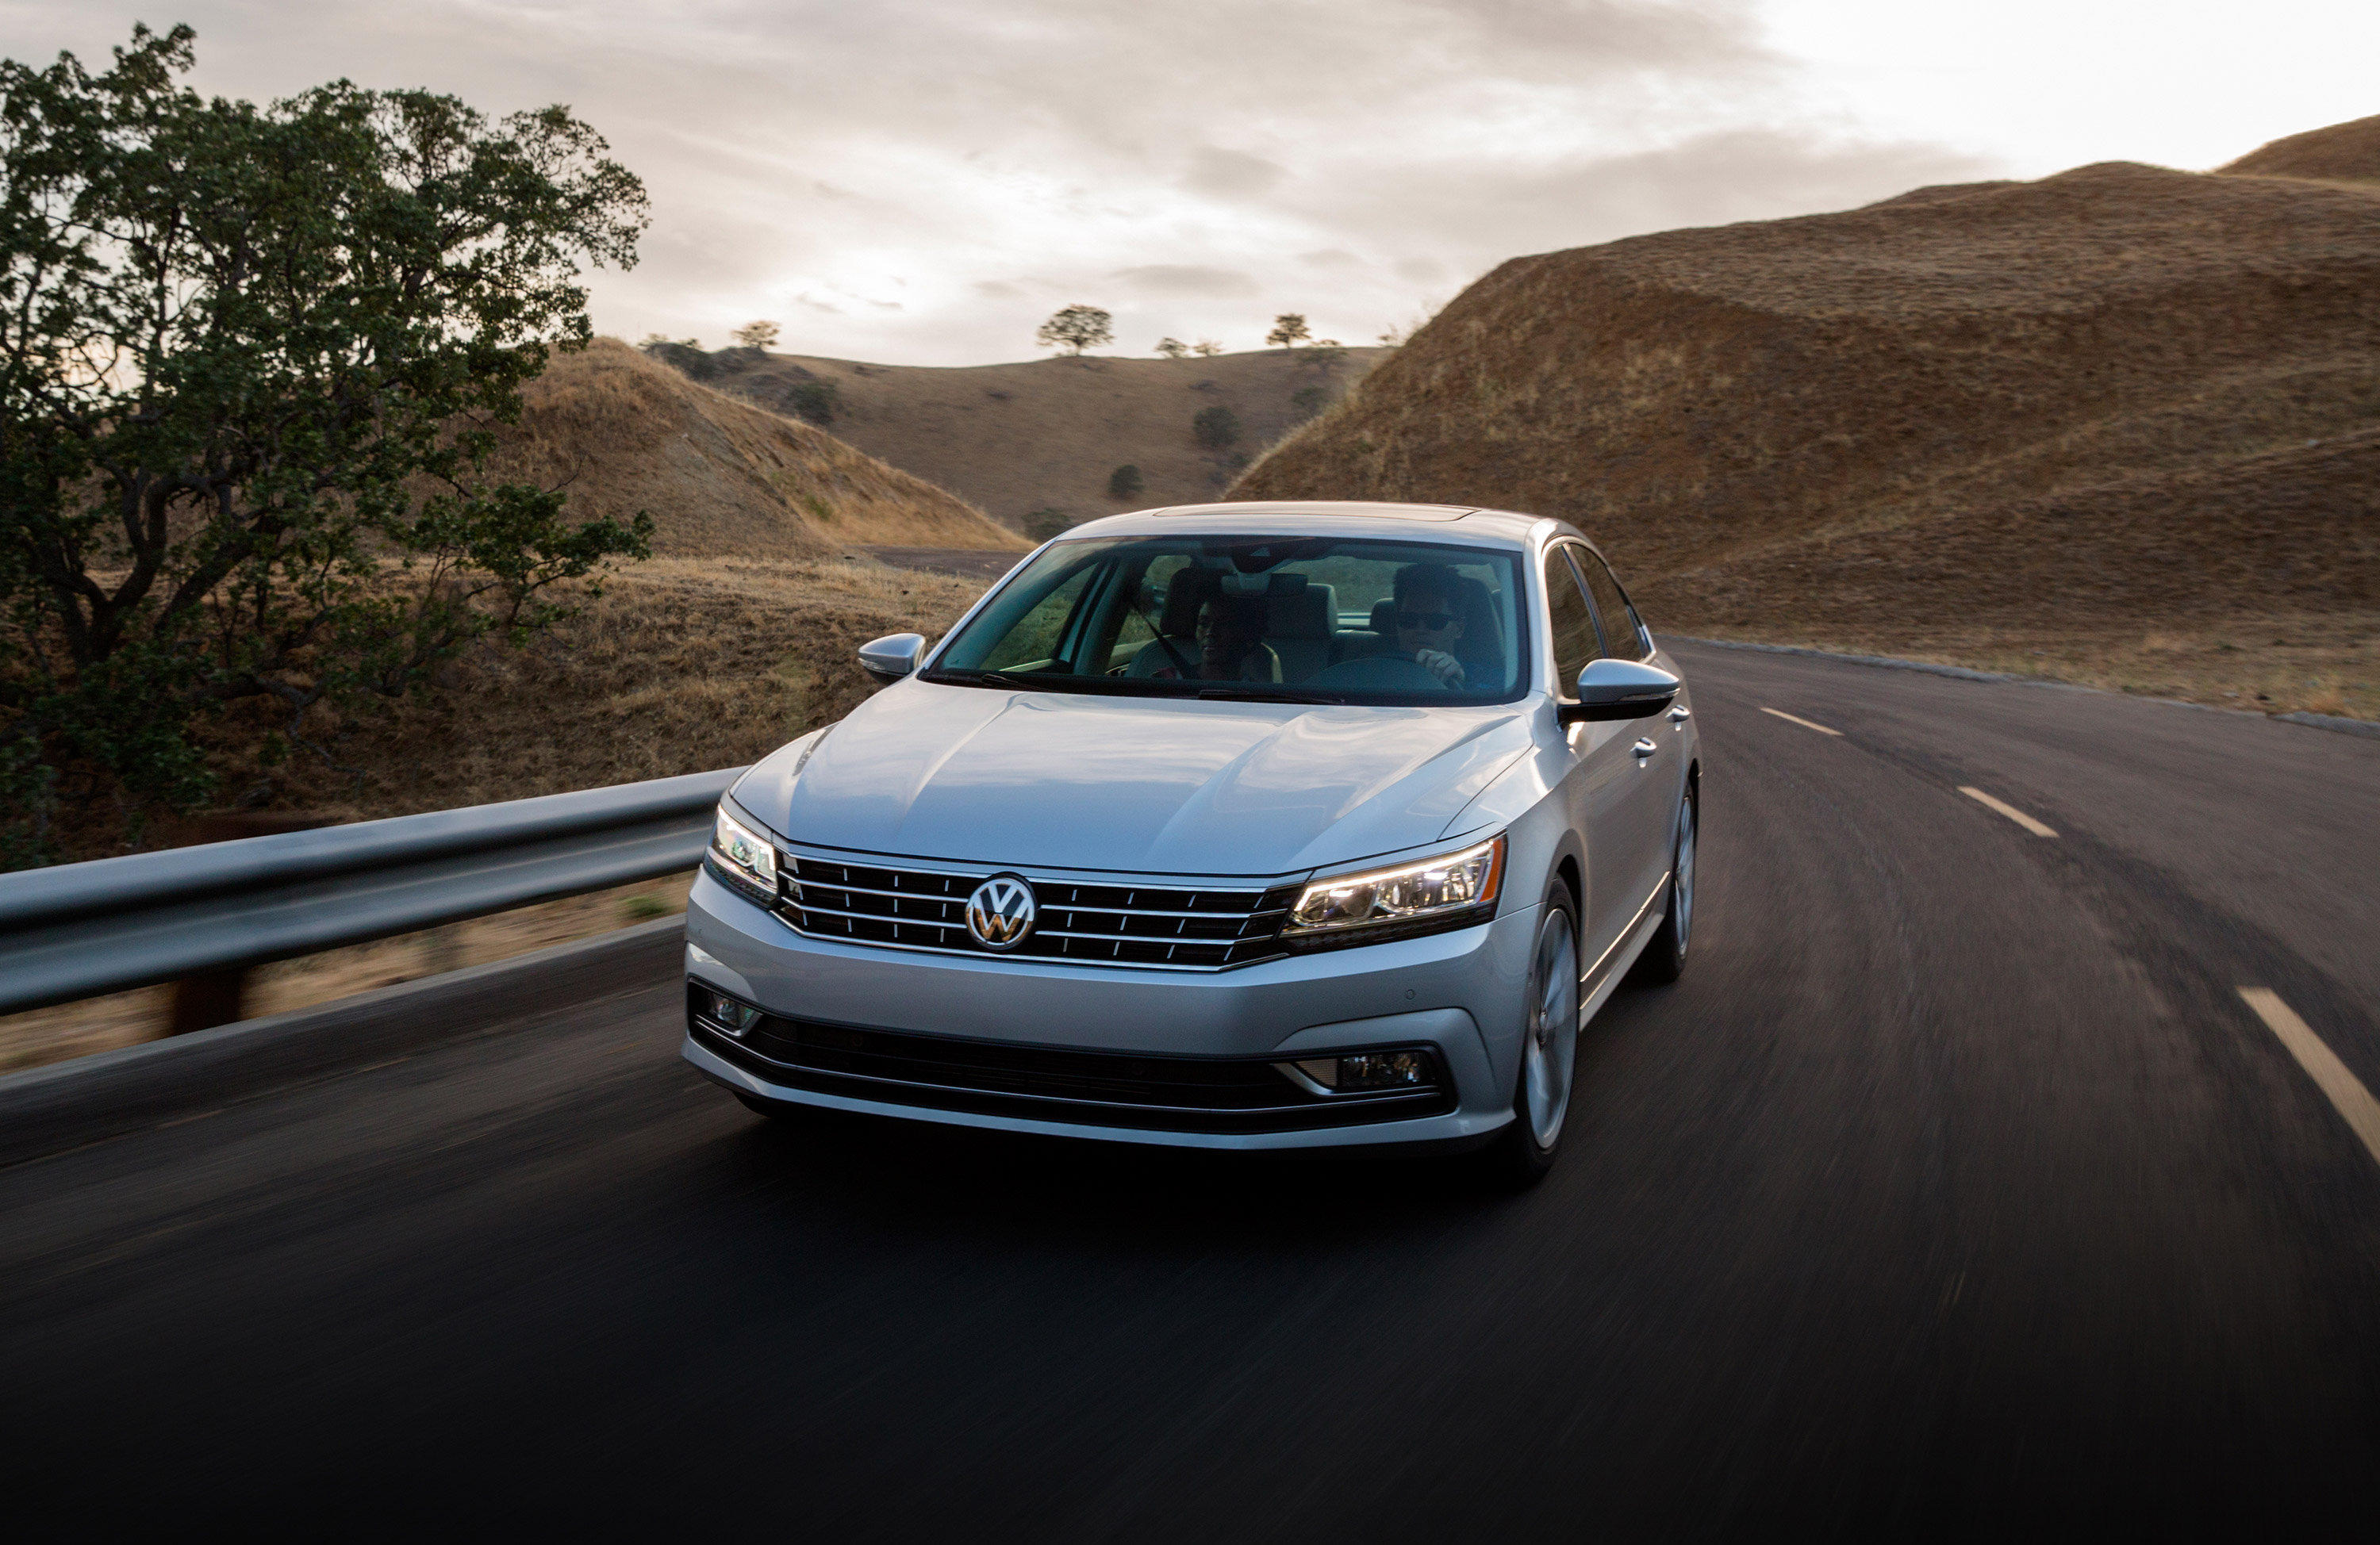 volkswagen expert passat used vehicle of review